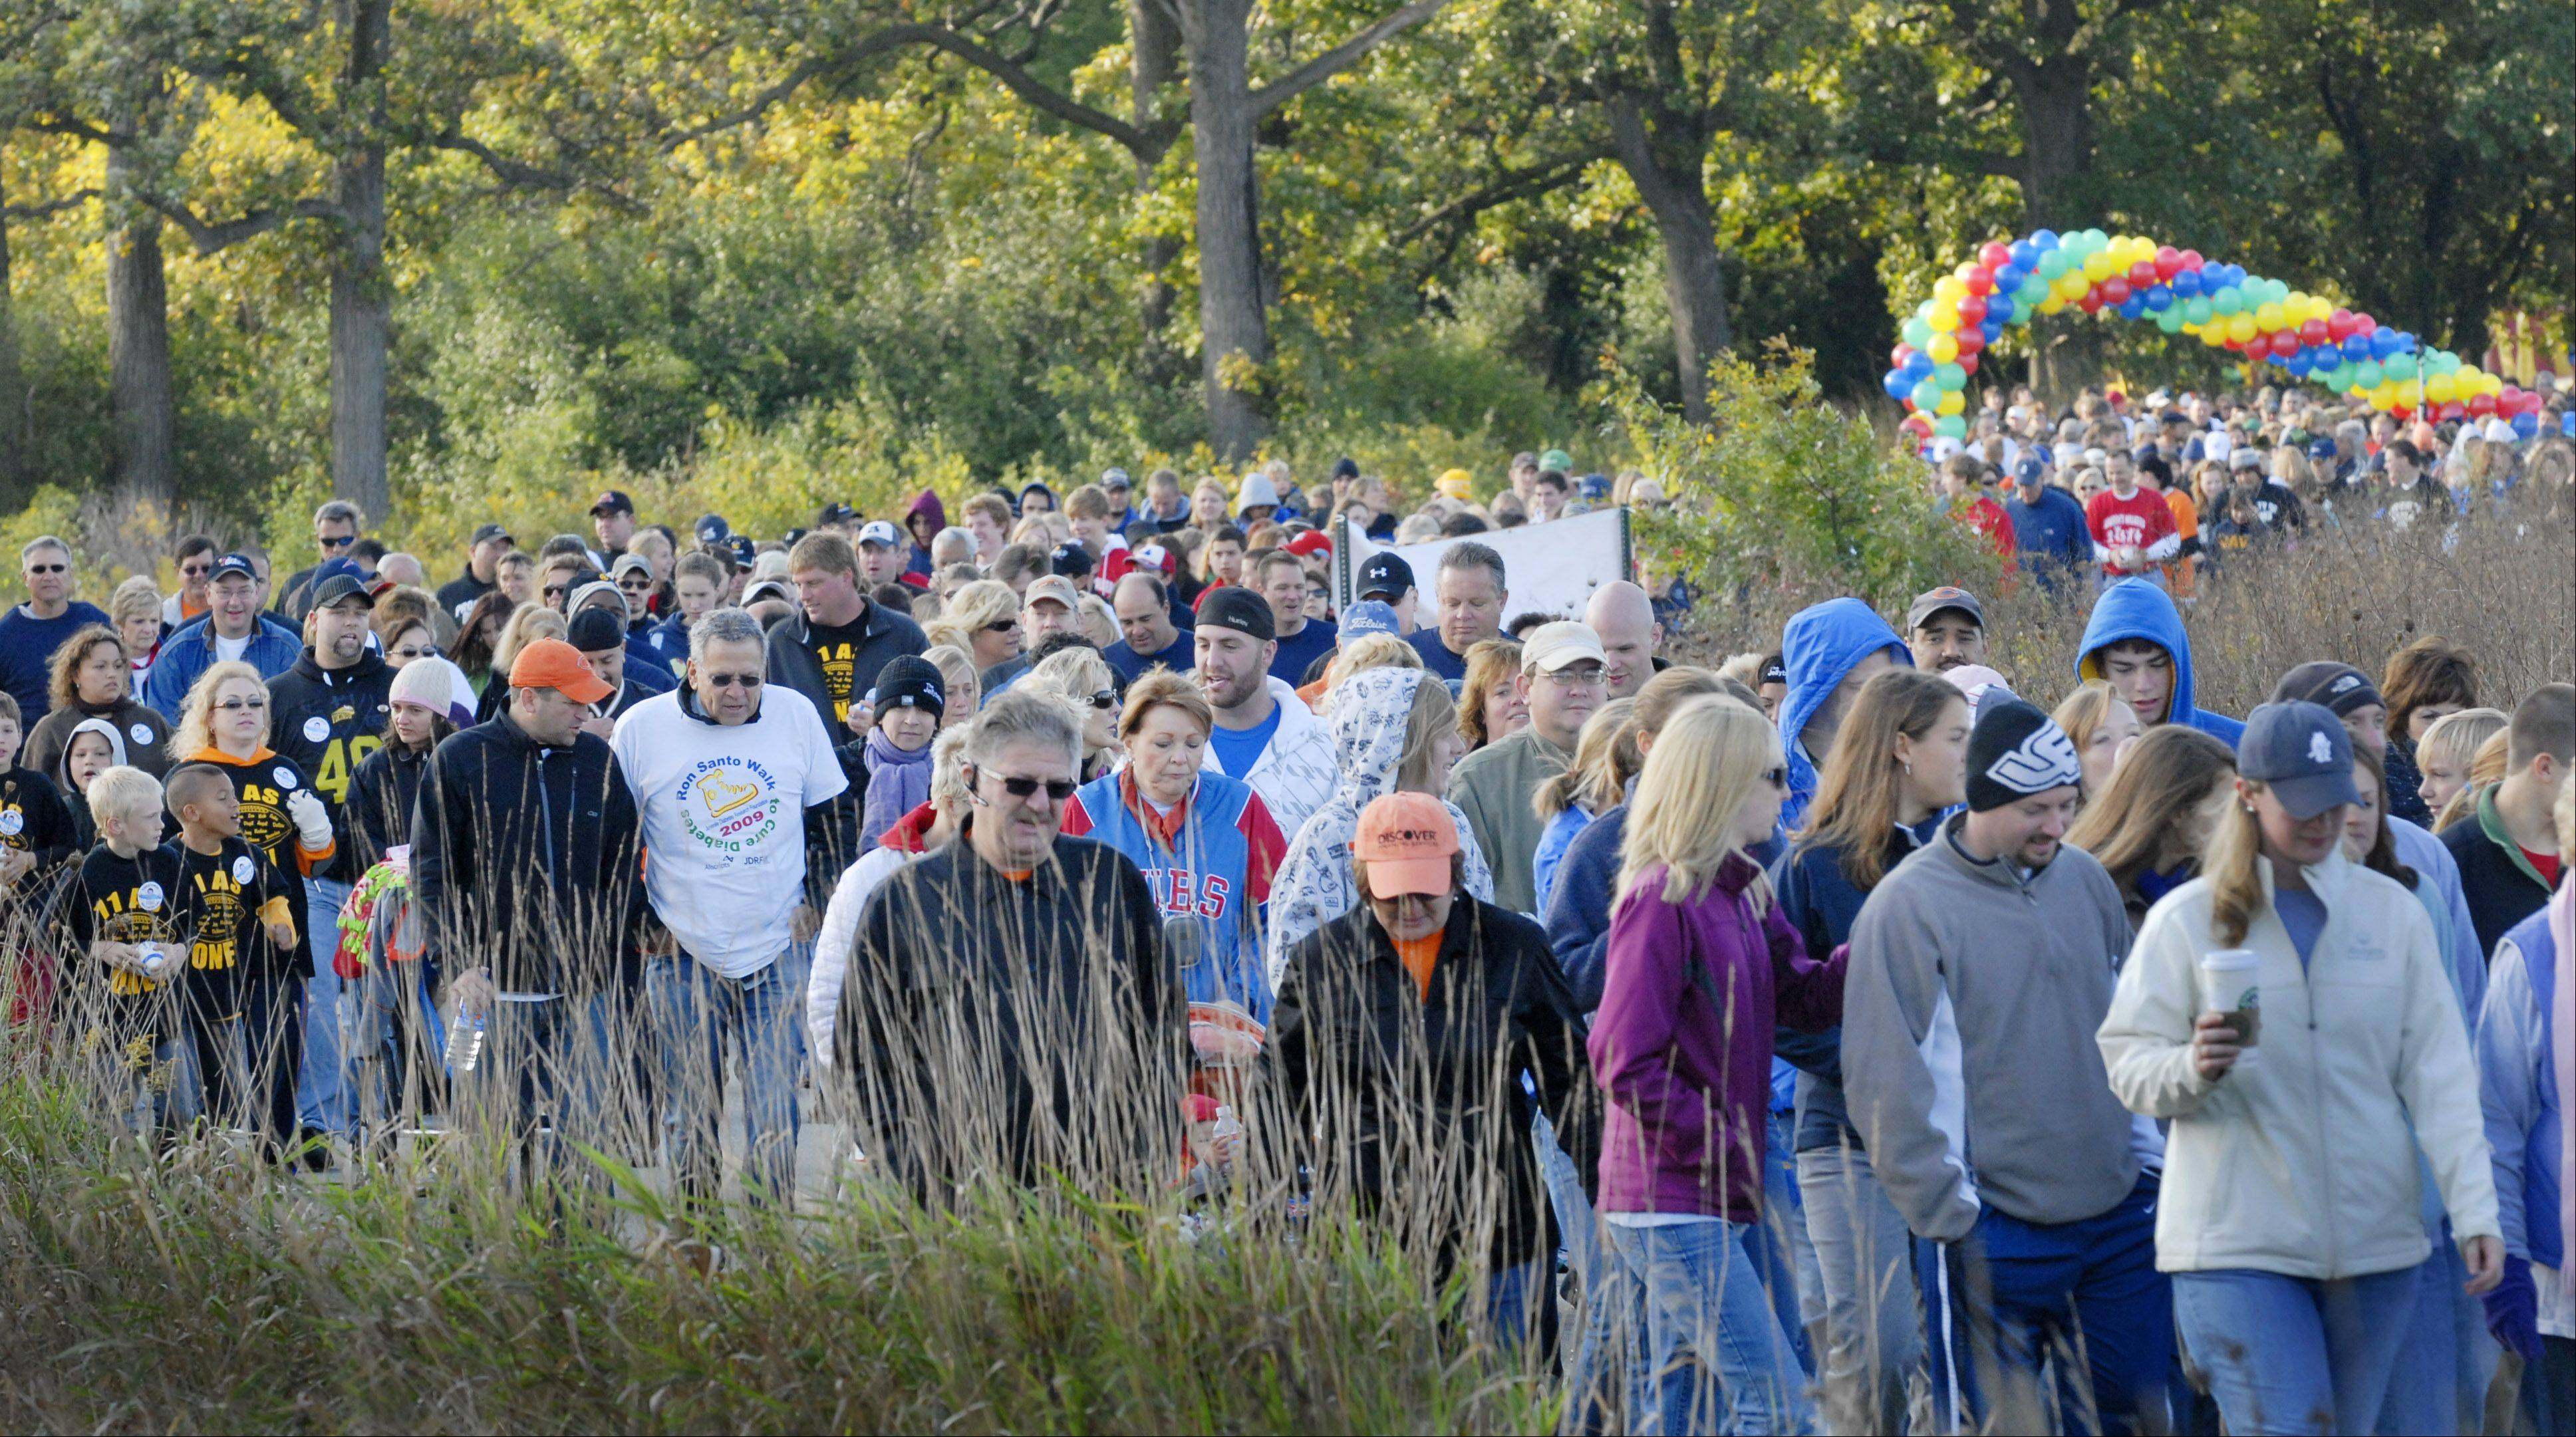 Ron Santo Walks in three suburban locations -- including Independence Grove Forest Preserve in Libertyville -- and on Chicago's lakefront will draw thousands of participants who help raise more than $4 million annual through the Illinois chapter of JDRF.